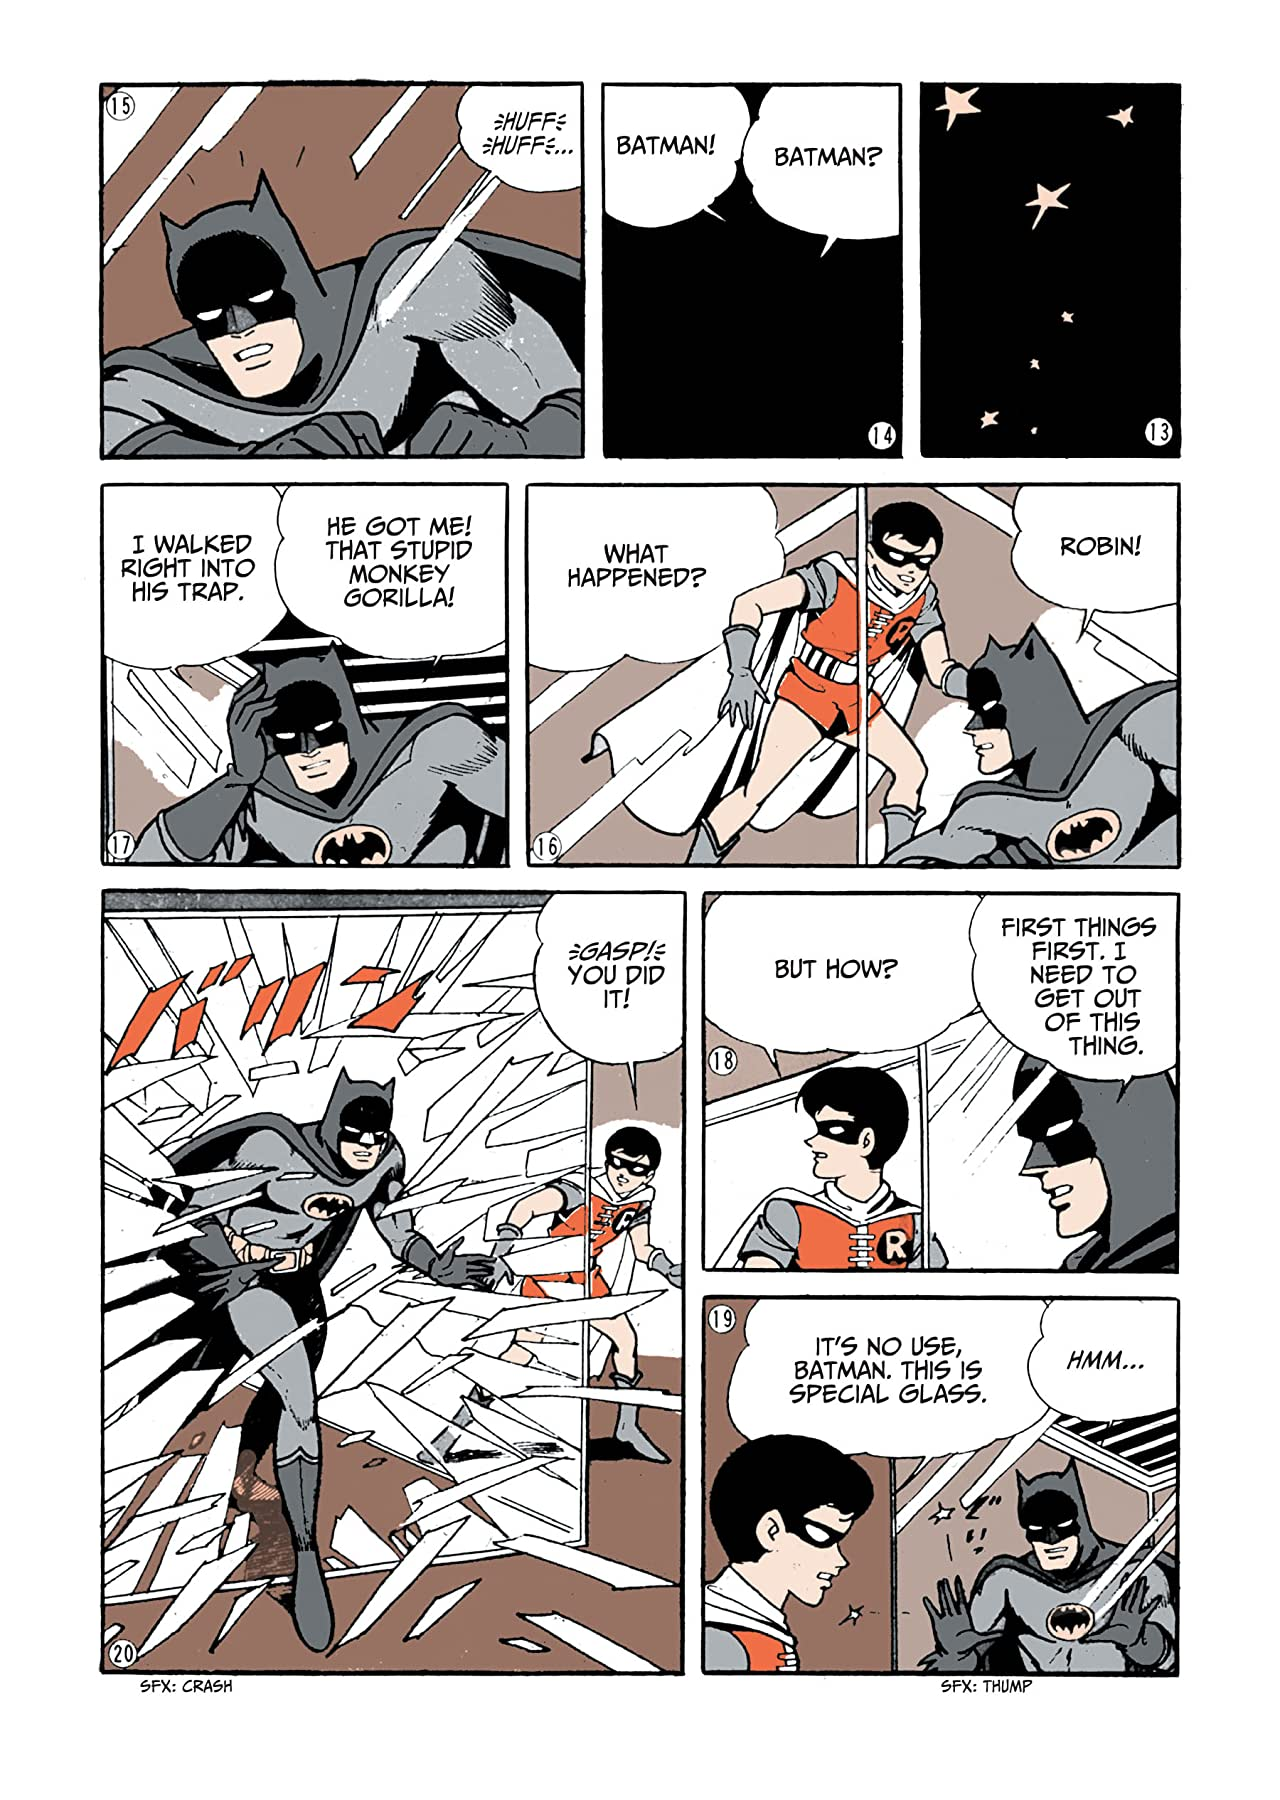 Batman: The Jiro Kuwata Batmanga #12